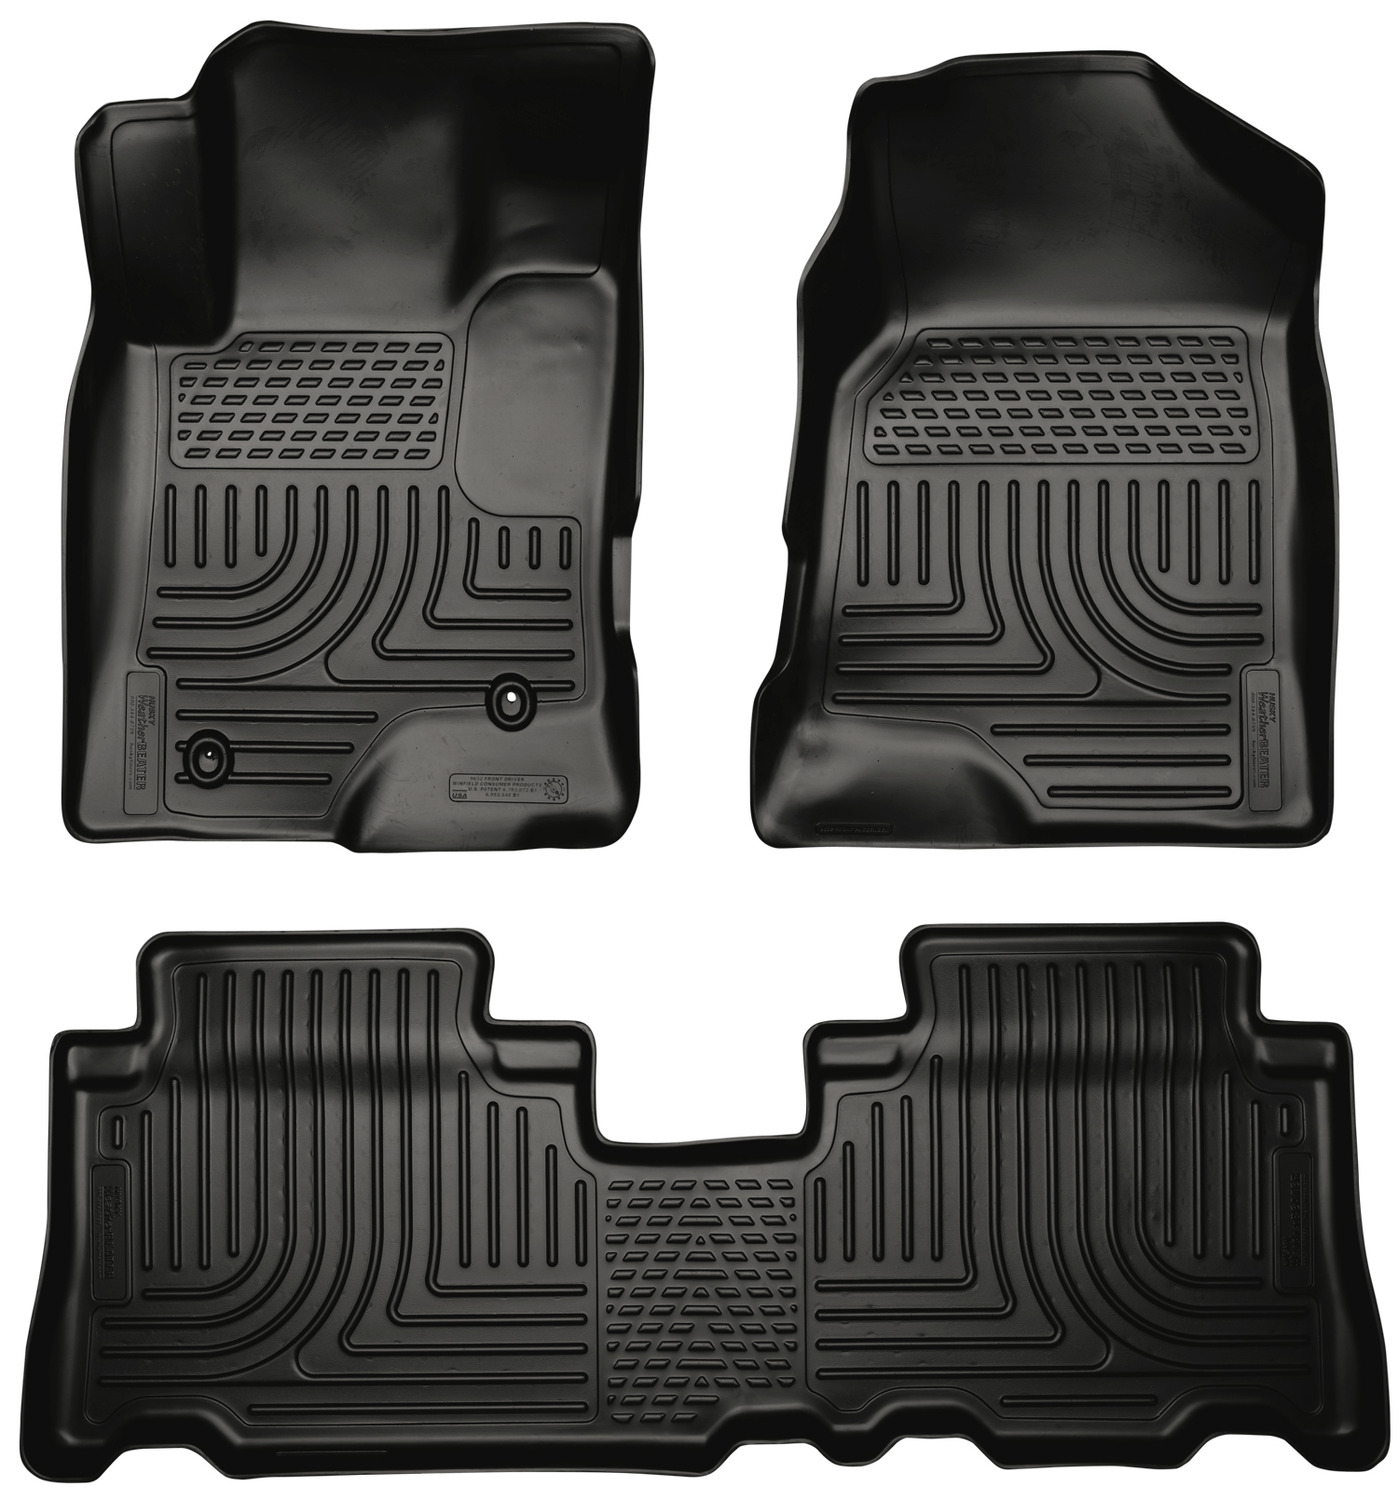 2012 Chevy Captiva Accessories: Husky Weatherbeater All Weather Floor Mats For 2012-2015